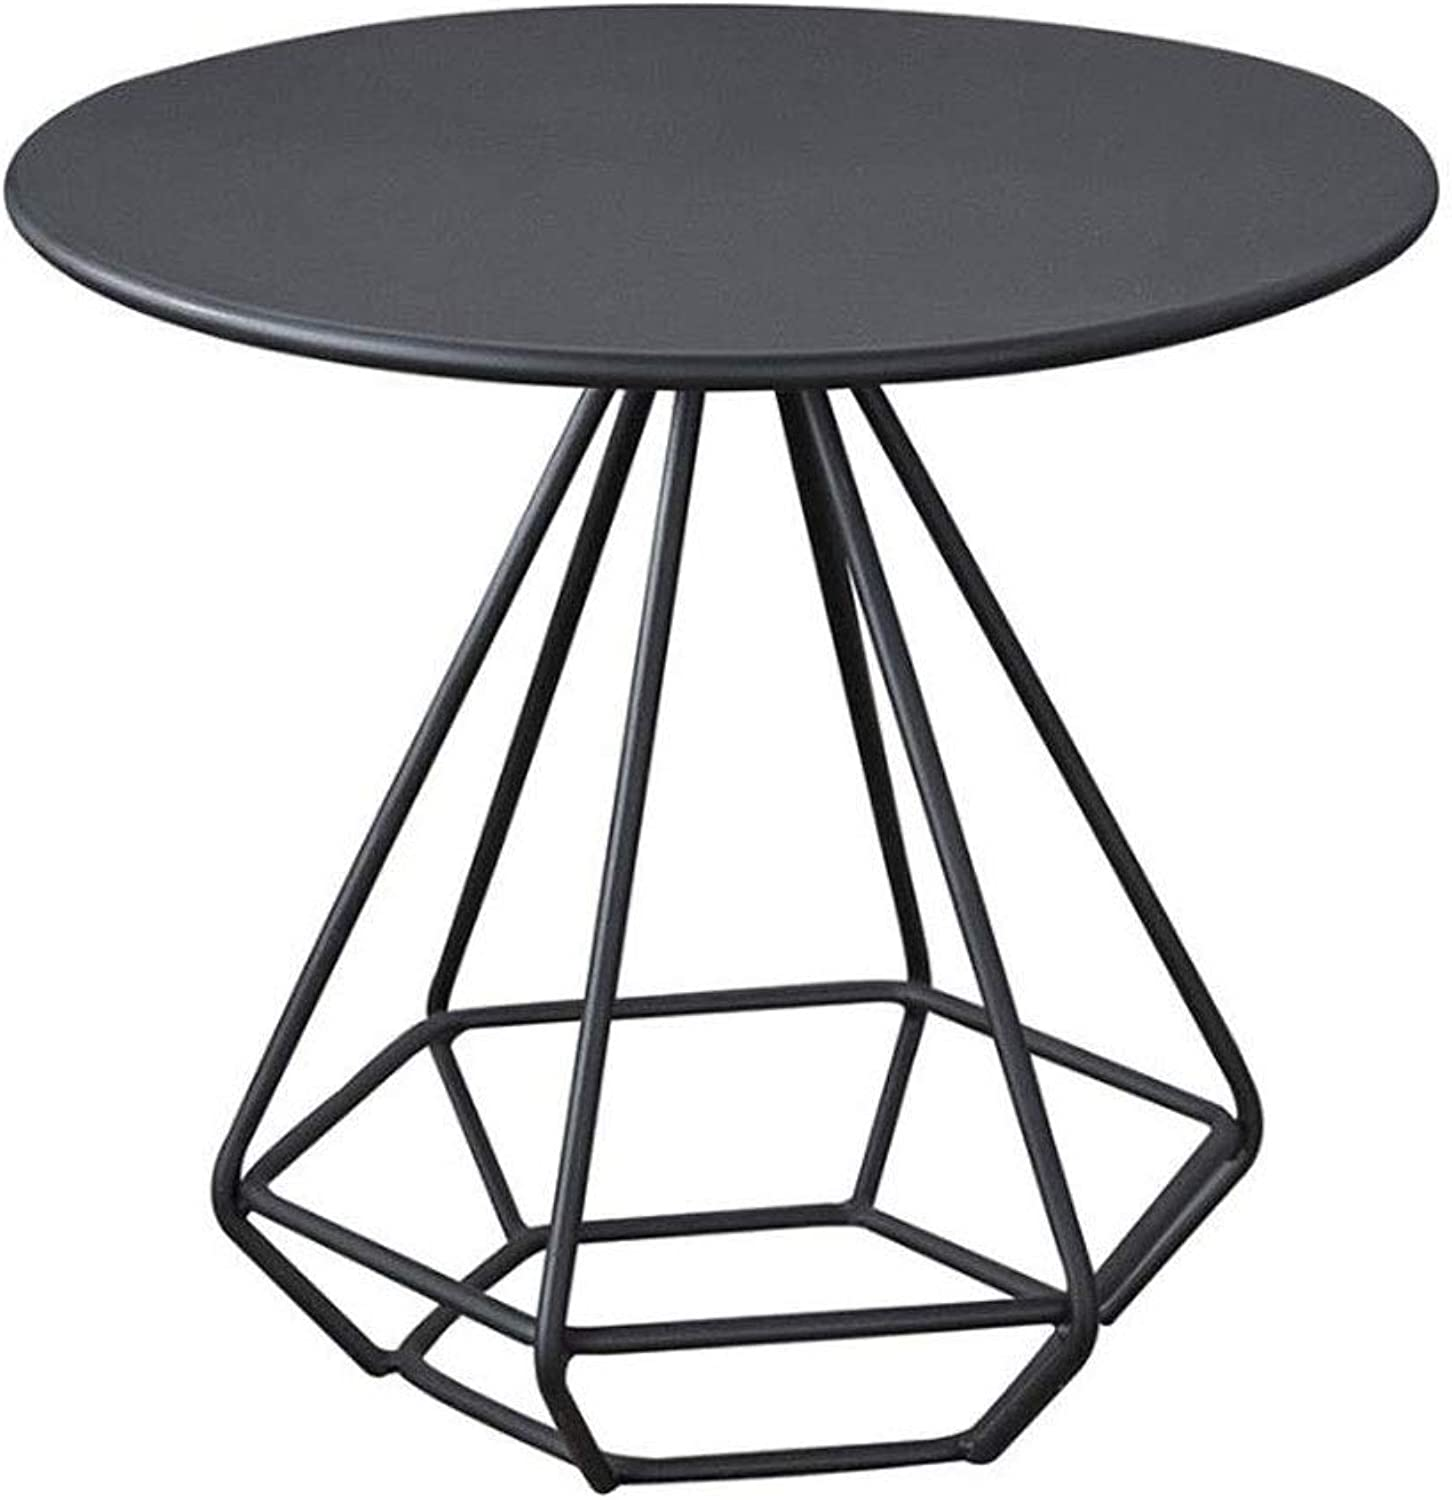 LYN Sofa Side End Table, Coffee Table Set Side Table with Metal Legs, Living Room Cafe Round Metal Frame,55  55  50 cm (color   Black)